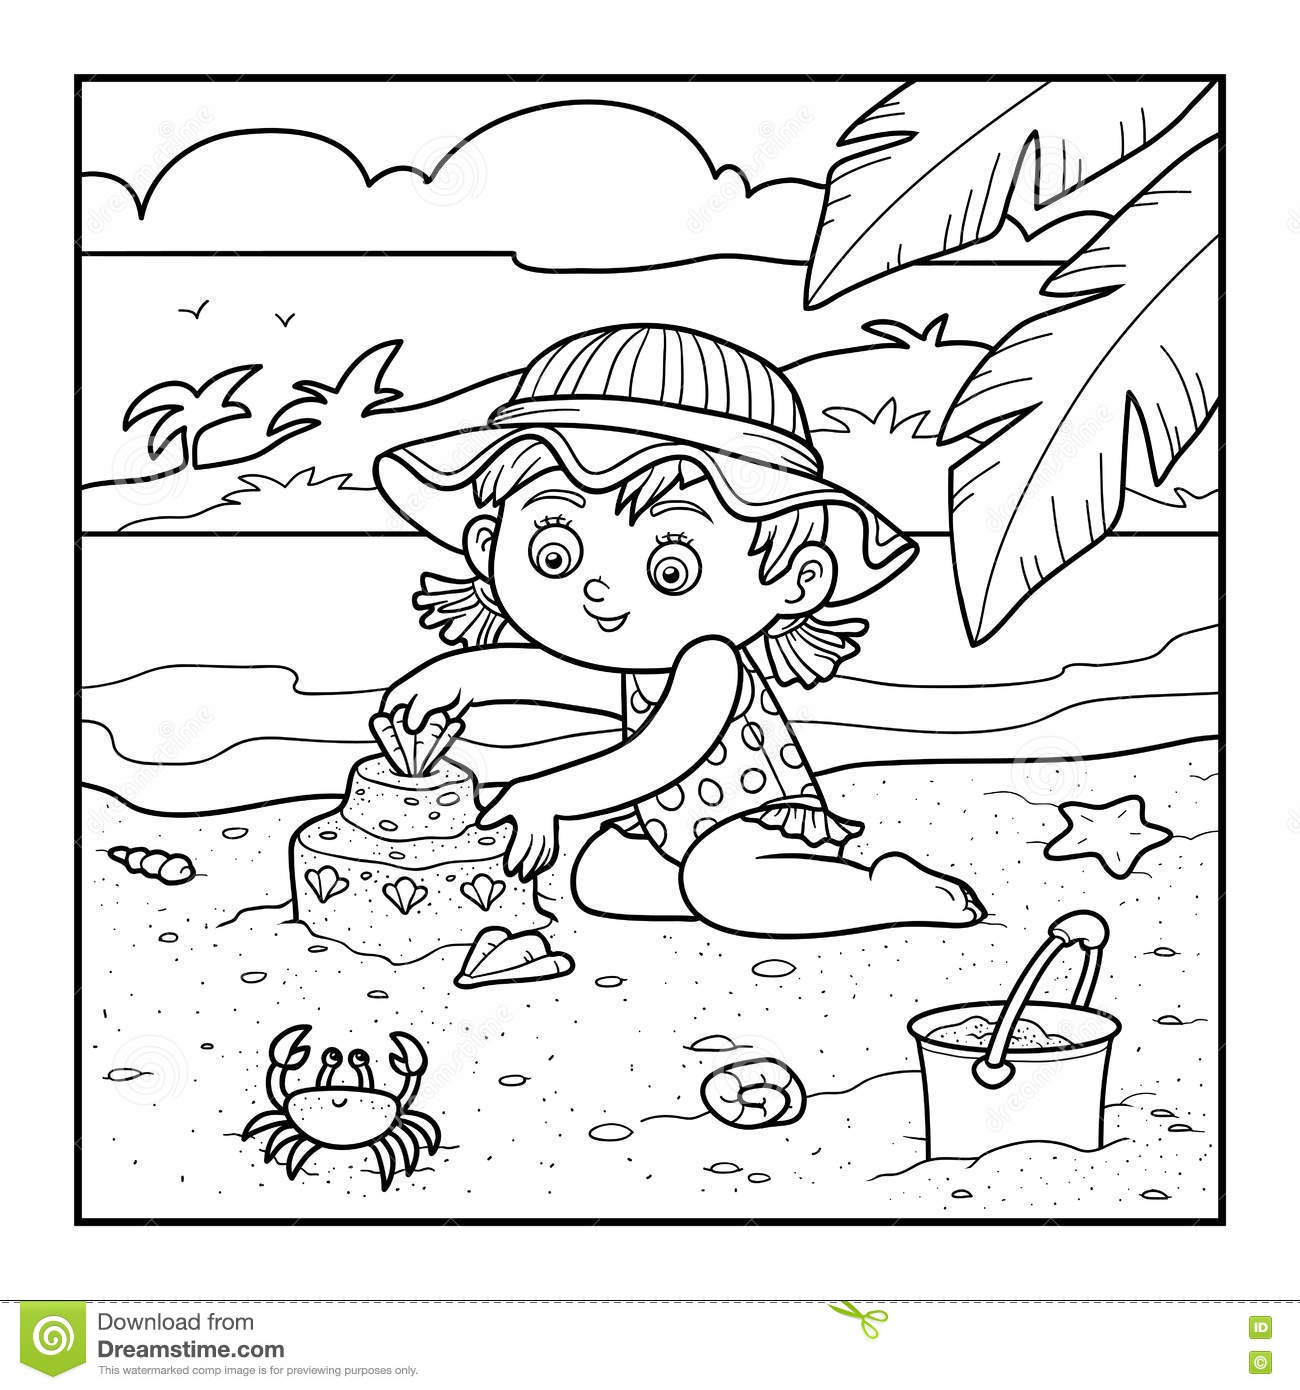 Coloring book for girl - Coloring Book For Children Girl Builds A Sand Castle Stock Vector